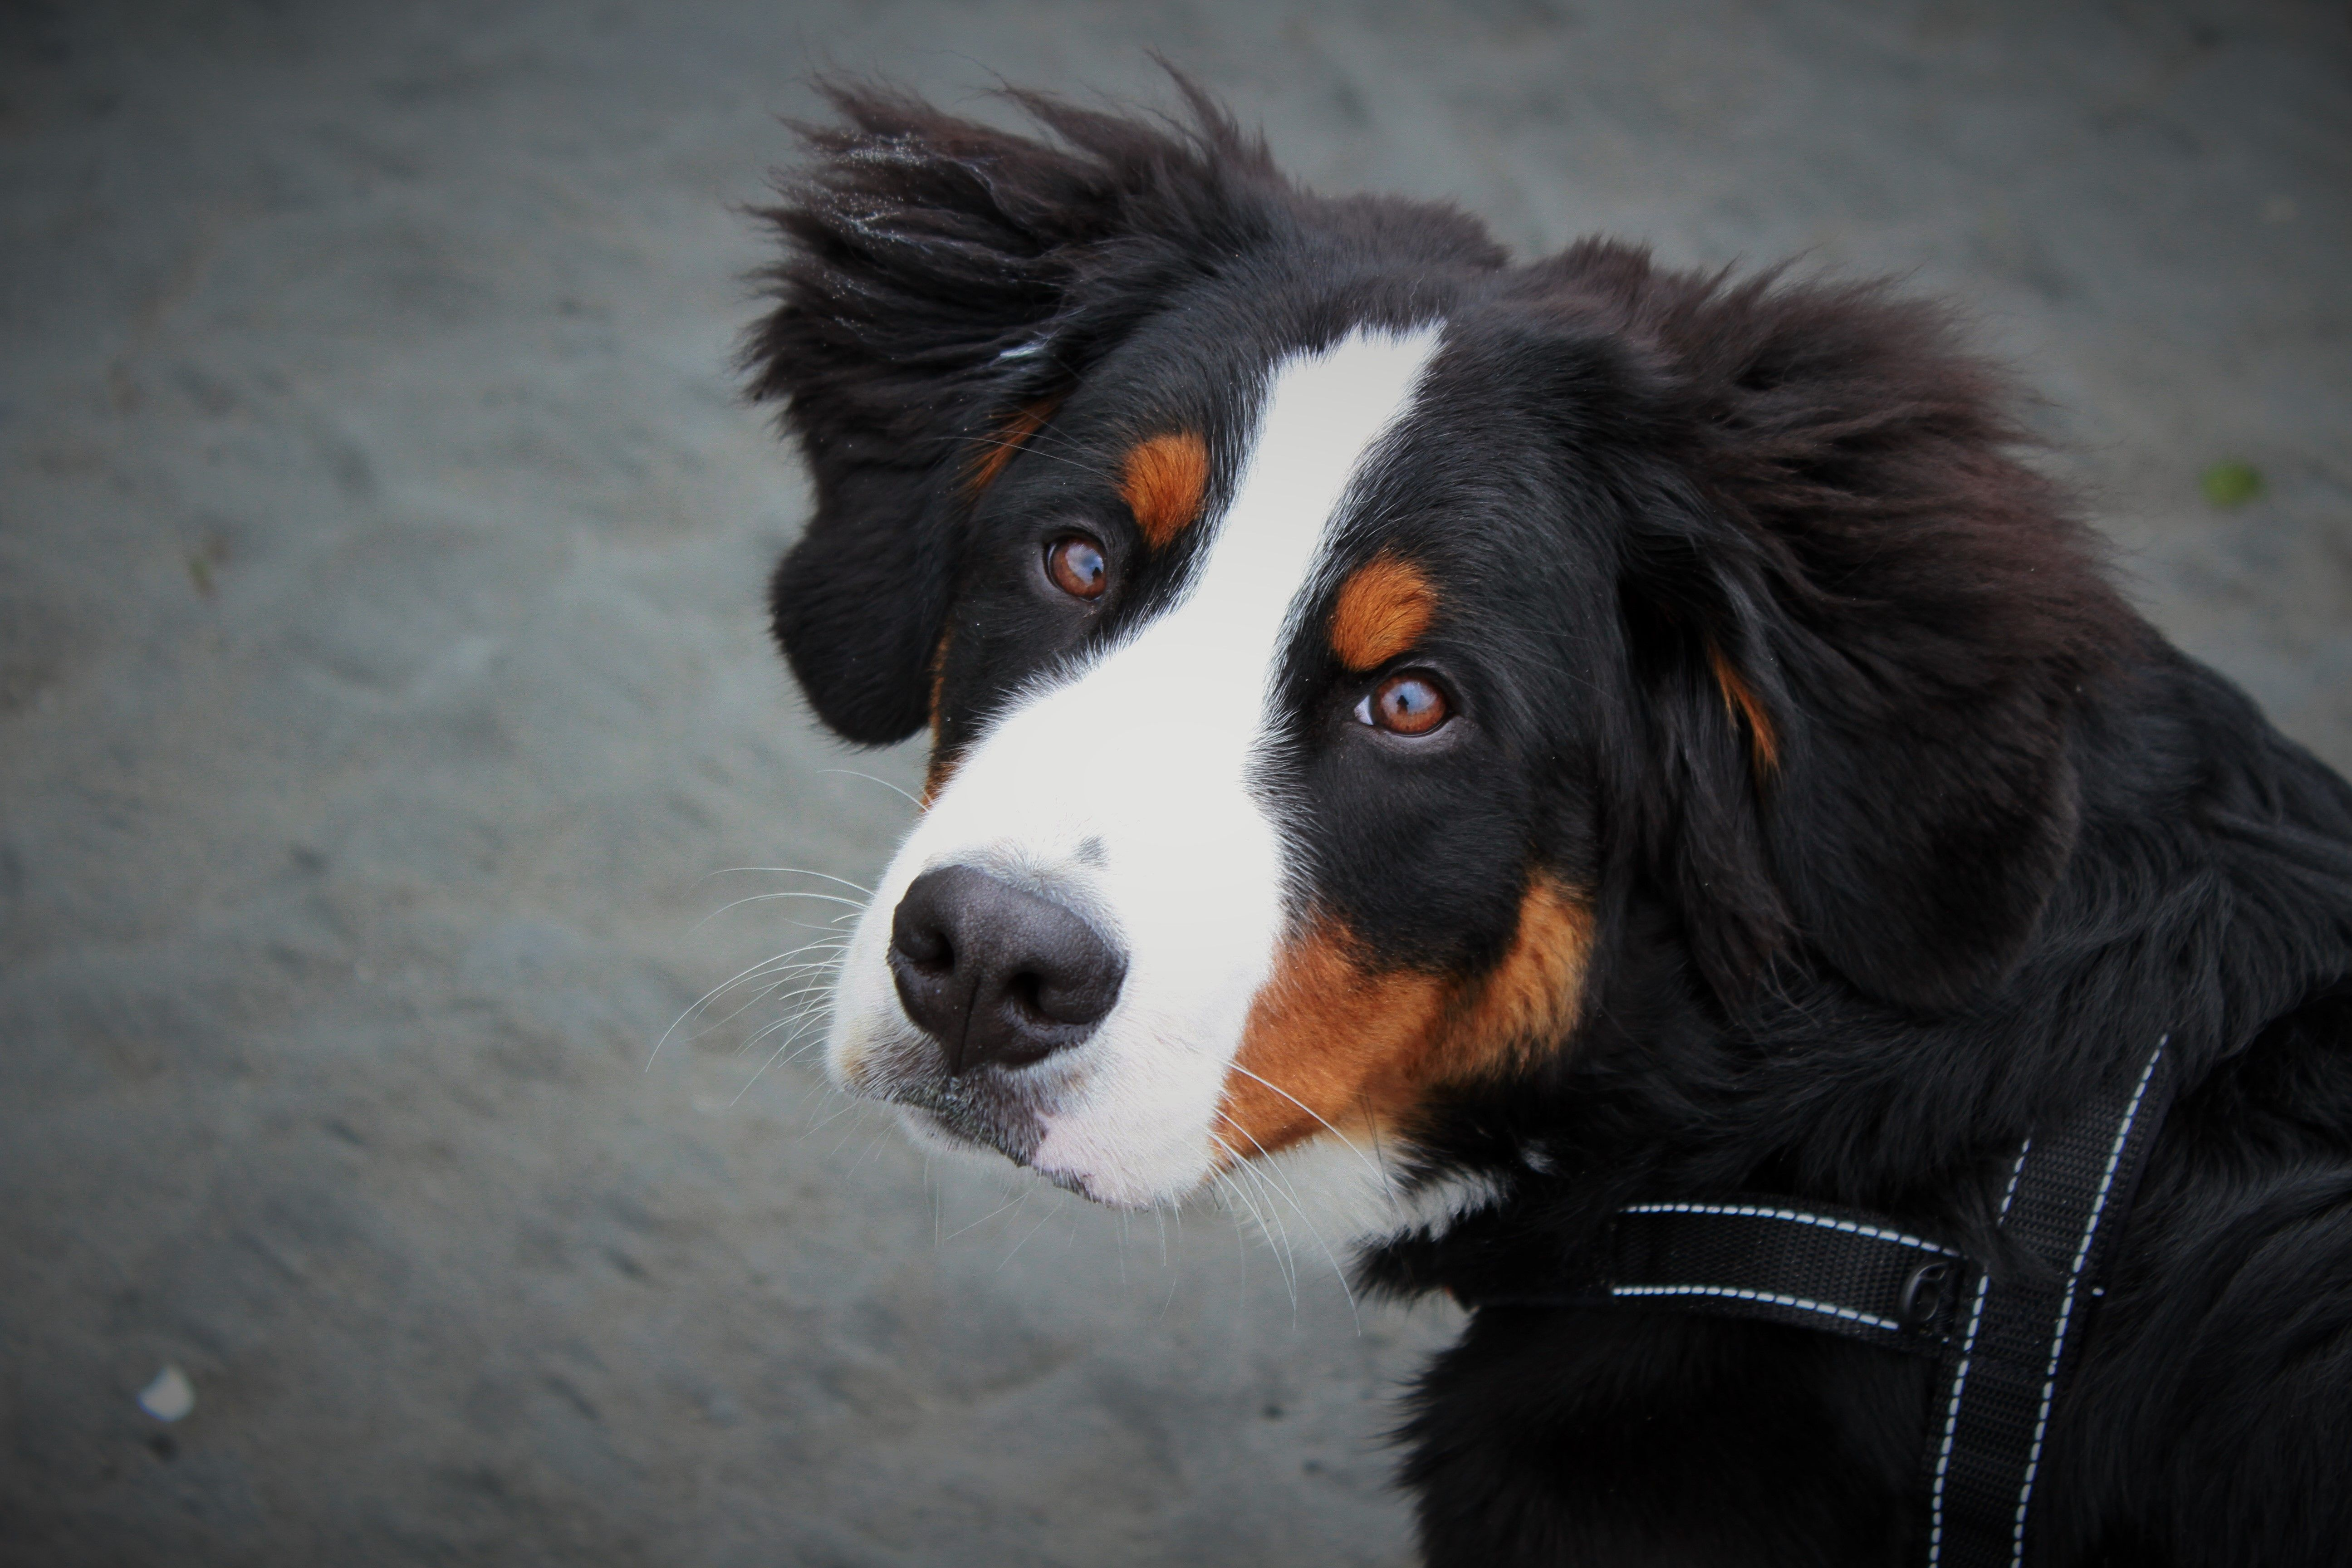 My First Burner Jaxon With Images Bernese Mountain Dog Mountain Dogs Dogs